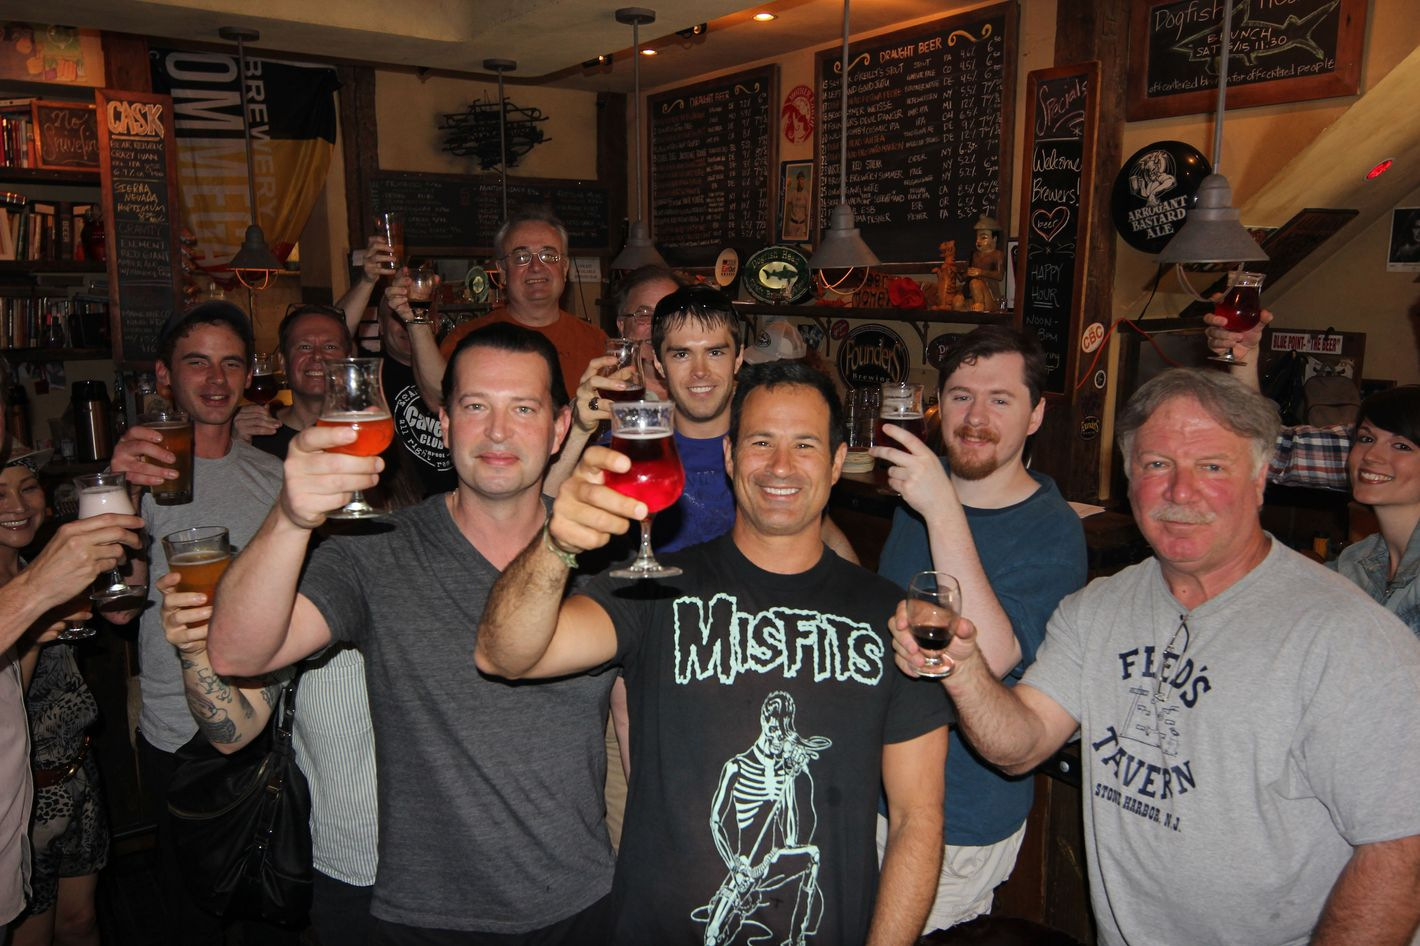 Calagione (in the Misfits shirt) with some friends at the Blind Tiger.